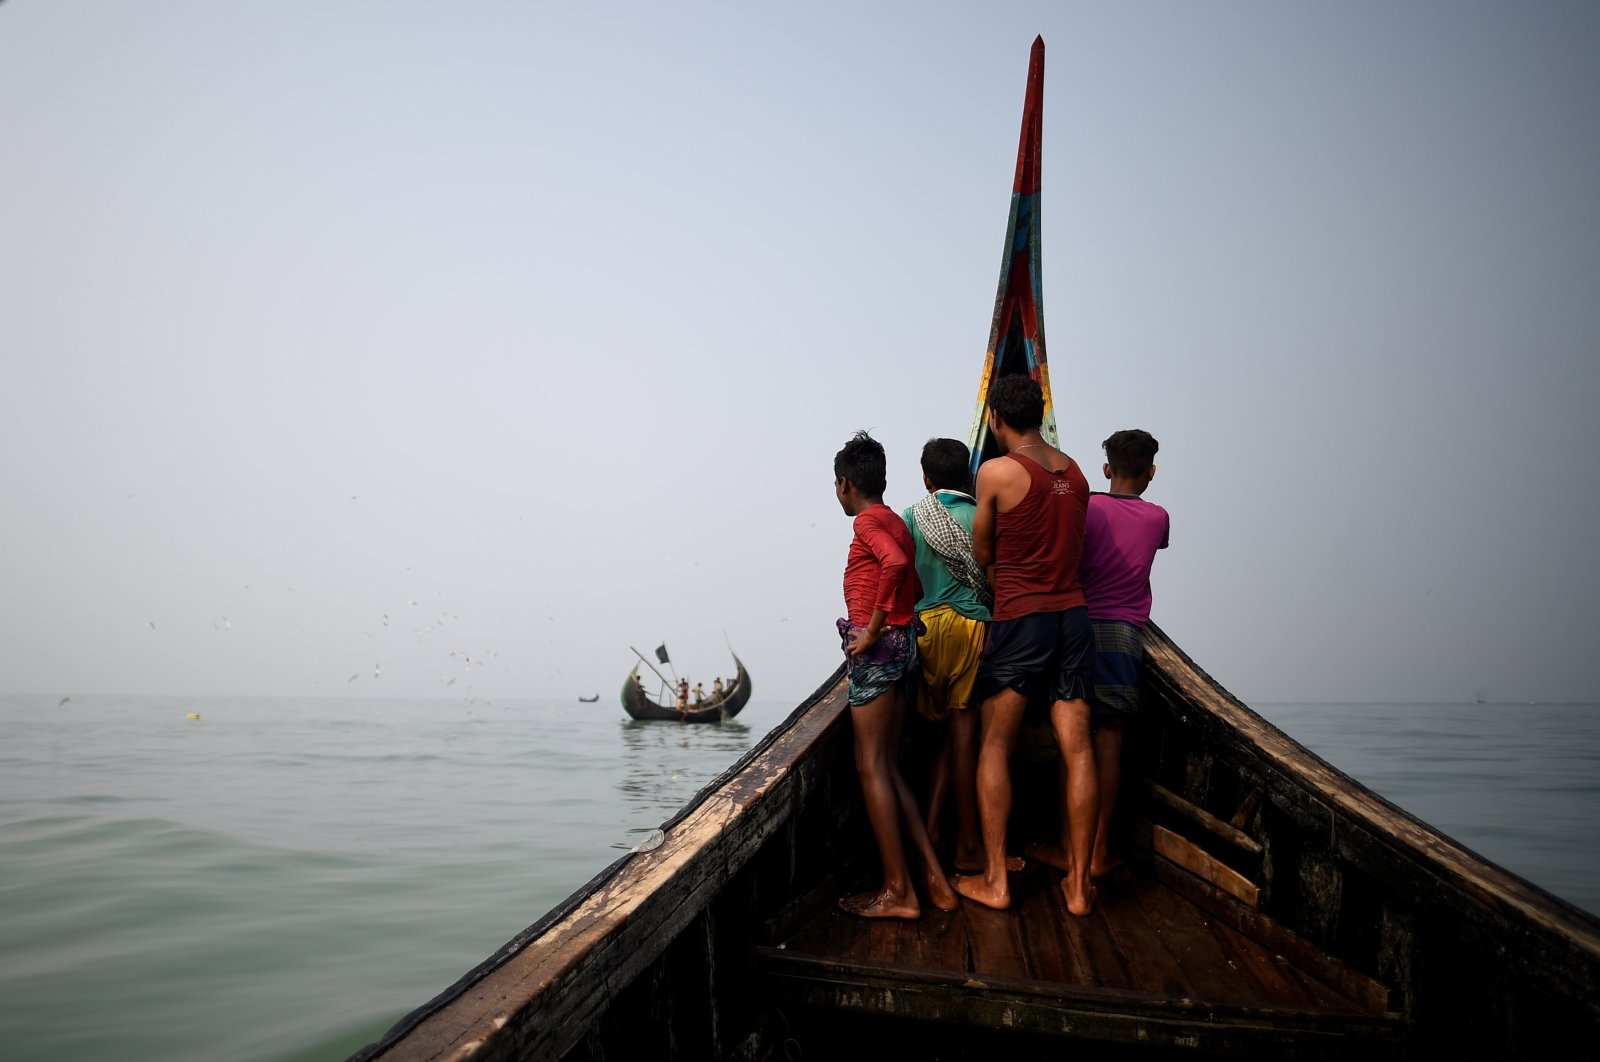 Rohingya refugees crew a fishing boat in the Bay of Bengal near Cox's Bazaar, March 24, 2018. (Reuters Photo)